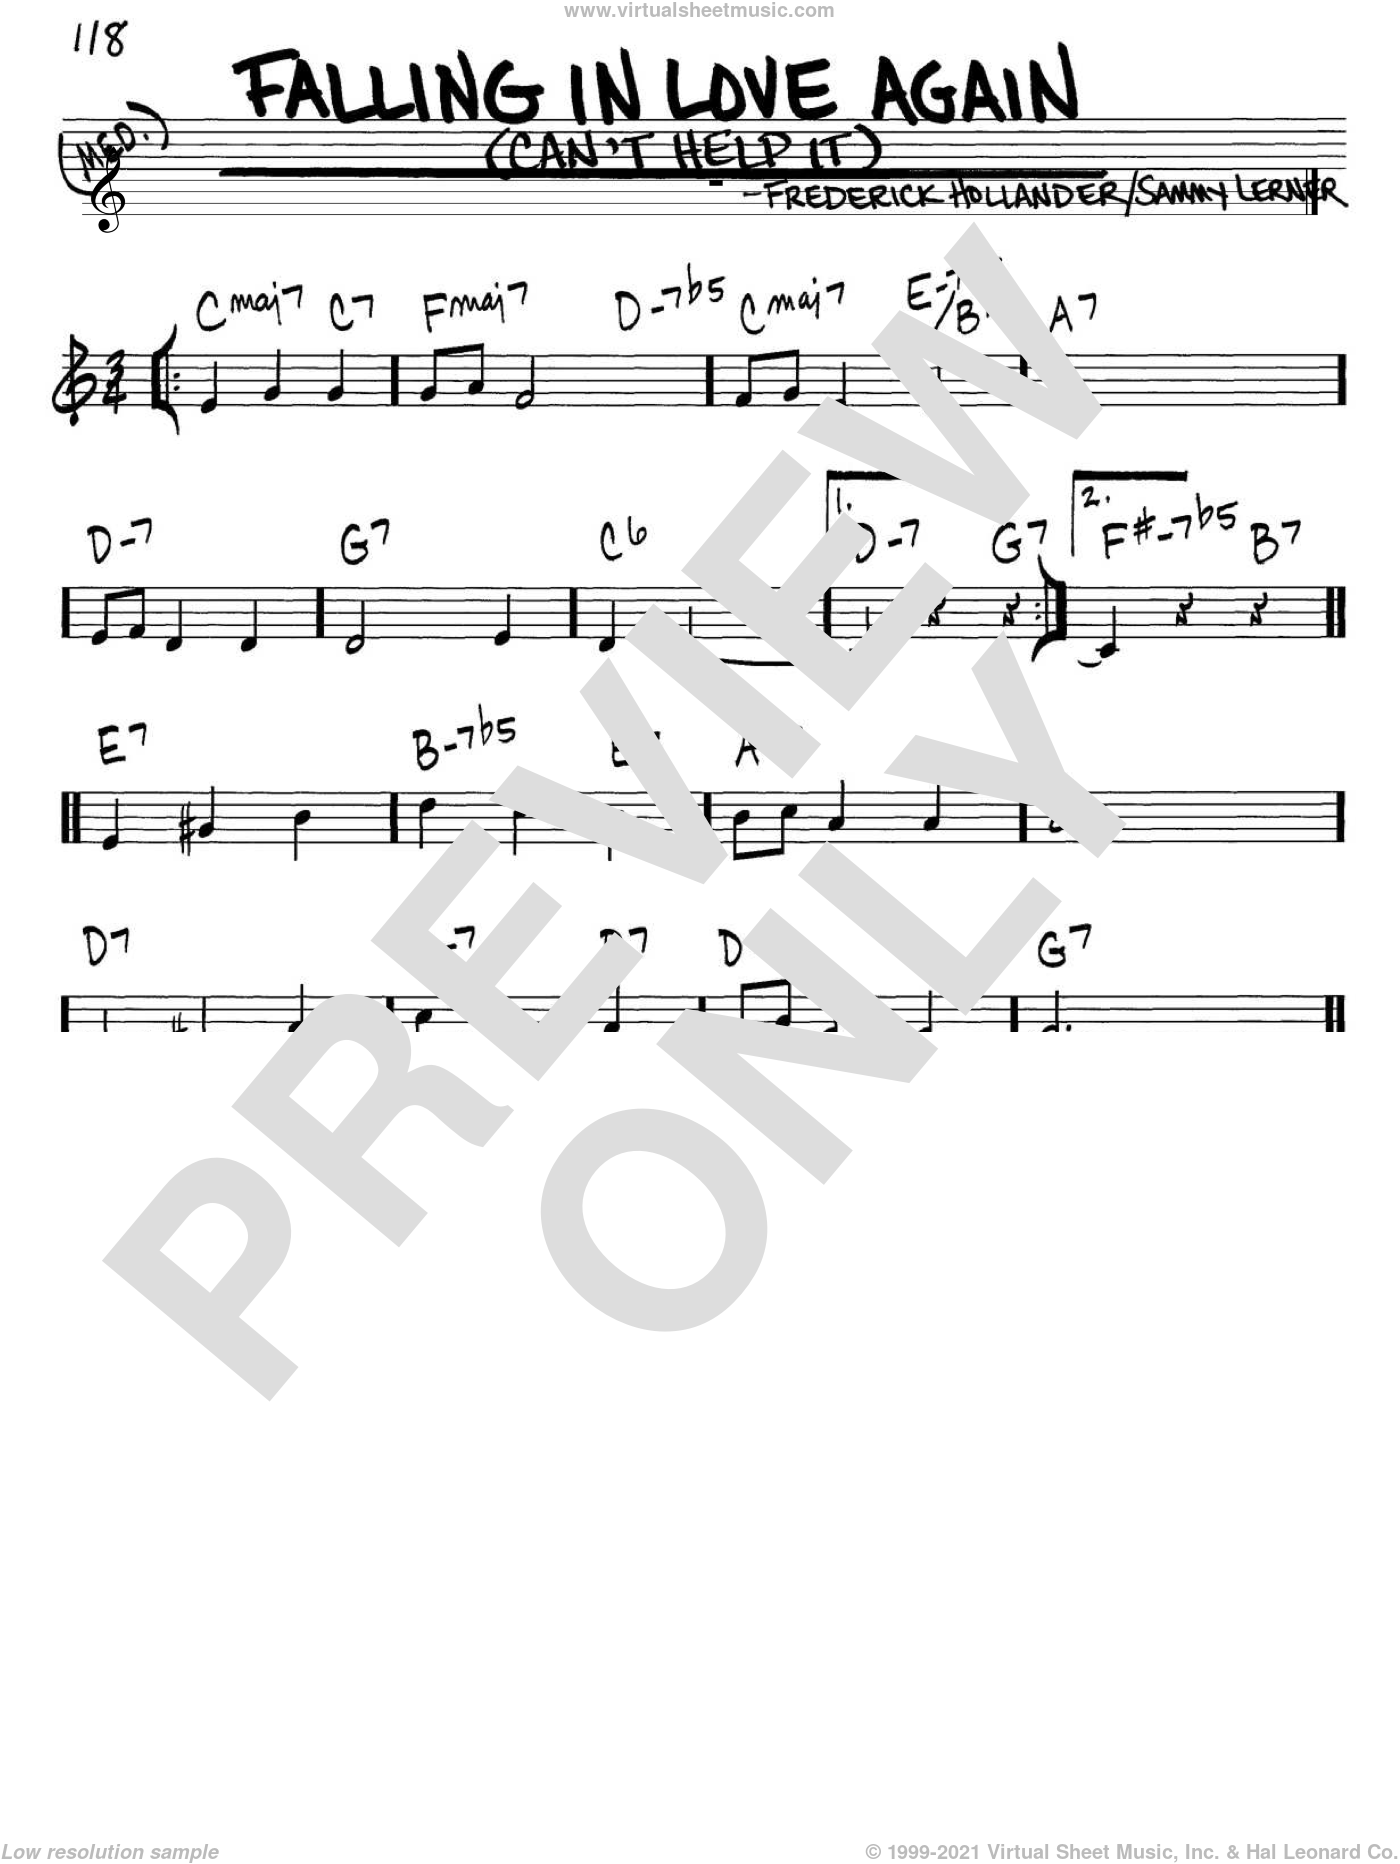 Falling In Love Again (Can't Help It) sheet music for voice and other instruments (in C) by Marlene Dietrich, Frederick Hollander and Sammy Lerner, intermediate skill level